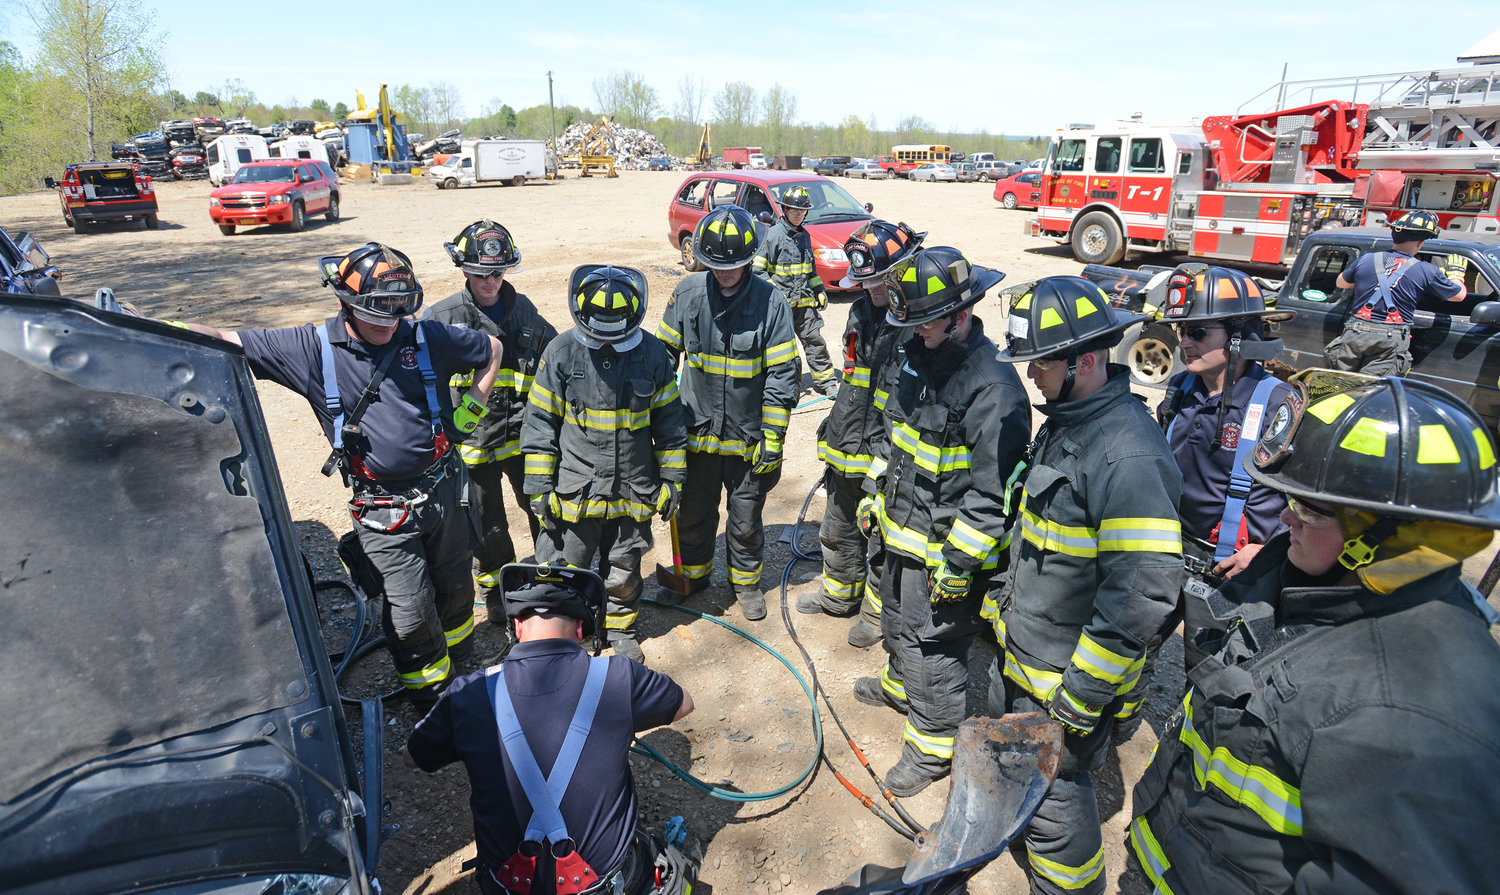 CLASS IN SESSION — New Rome Fire Department recruits watch as Firefighter Adam Palinski cuts into a car with hydraulic tools at Rubicon Recycling Thursday afternoon. Department officials said they have started training their new recruits in-house because the pandemic has temporarily closed the regular fire academy in Utica.